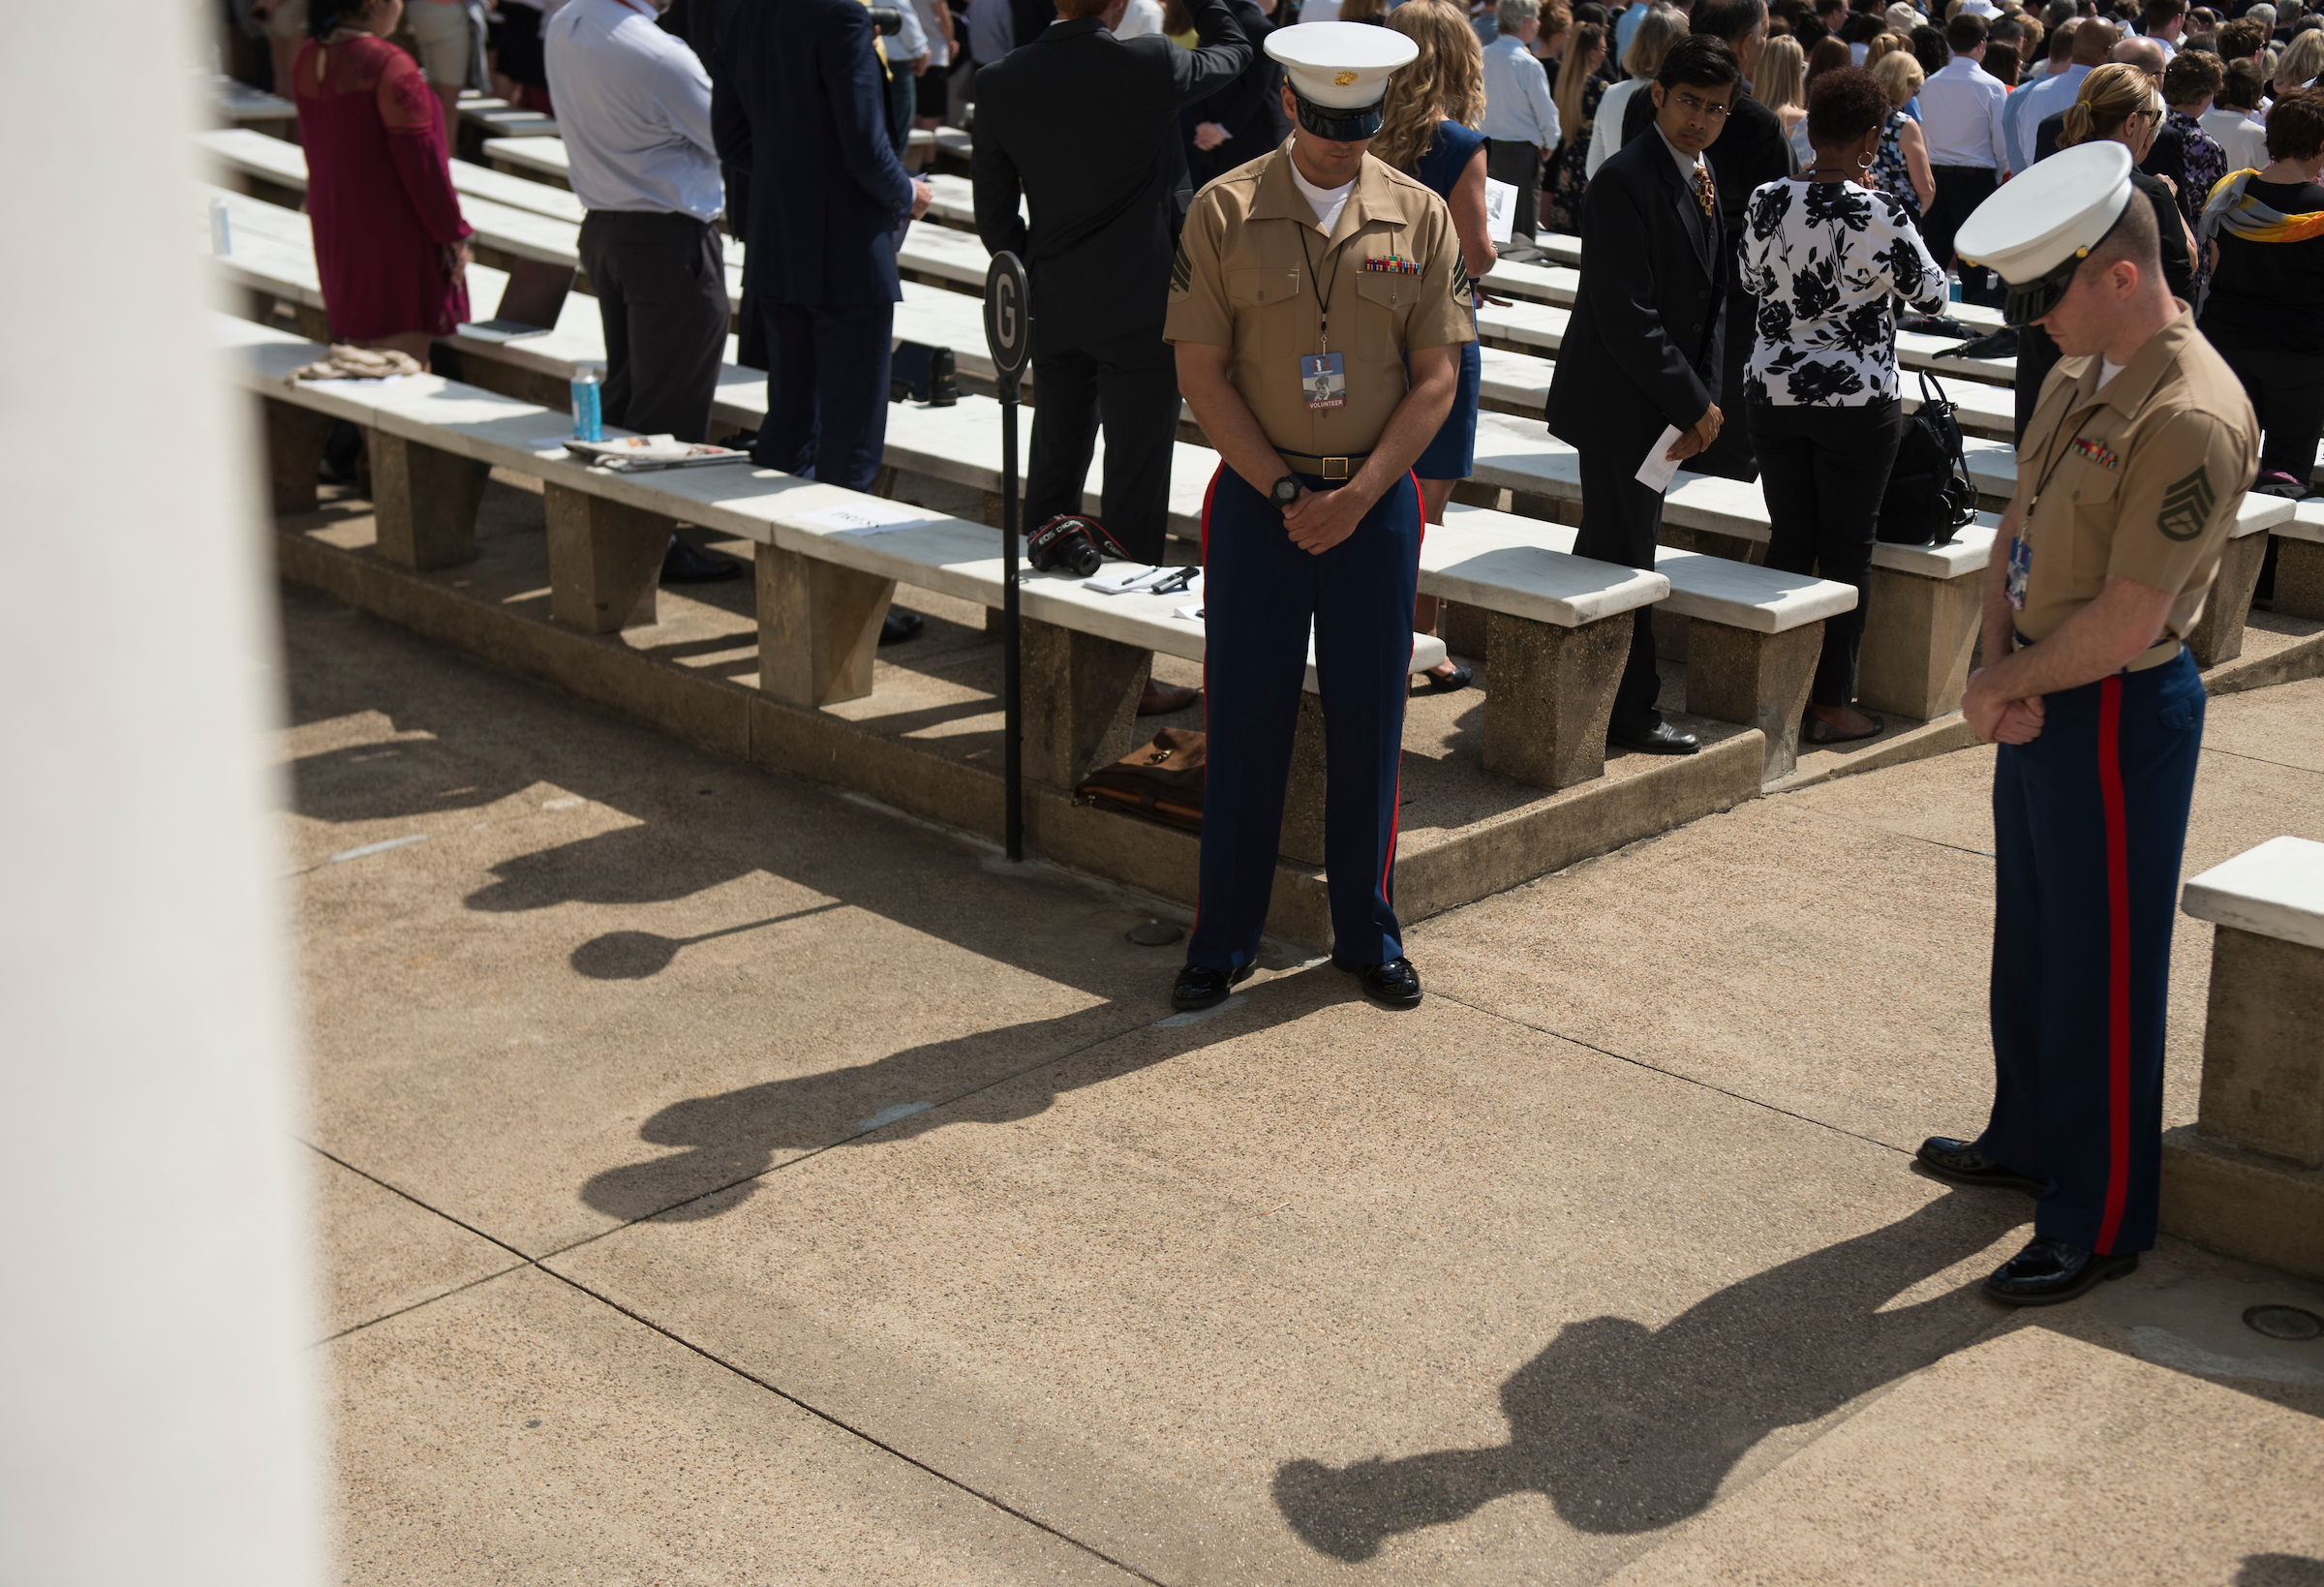 UNITED STATES - June 6: People bow their head in prayer before the Robert Francis Kennedy Memorial Service at Arlington National Cemetery held on the 50th anniversary of his assassination Wednesday June 6, 2018. (Photo By Sarah Silbiger/CQ Roll Call)